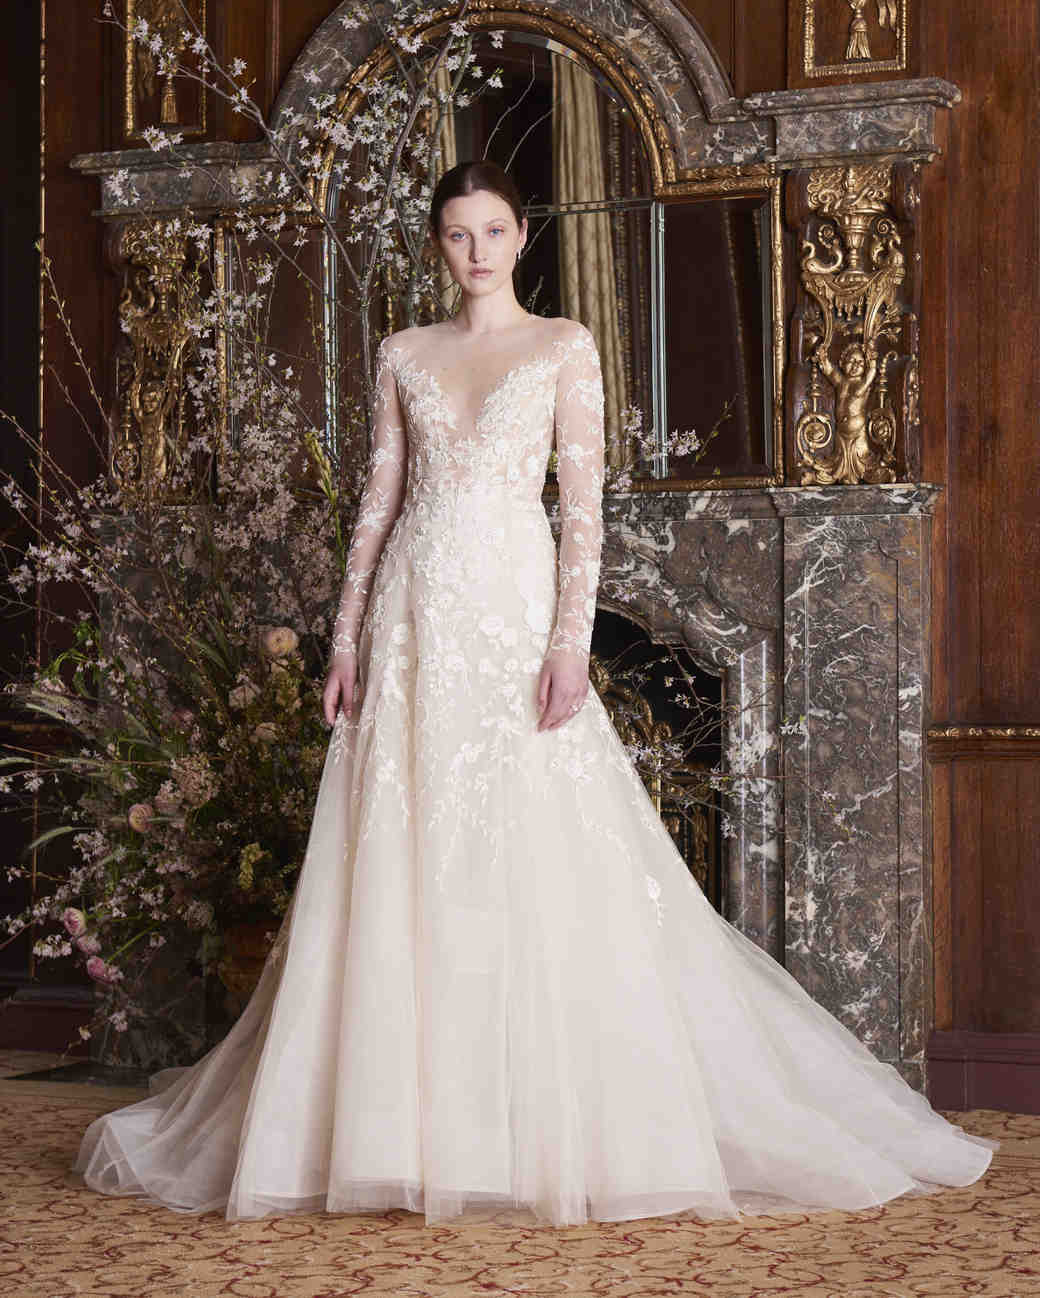 Bridal Dresses 2019: Monique Lhuillier Spring 2019 Wedding Dress Collection